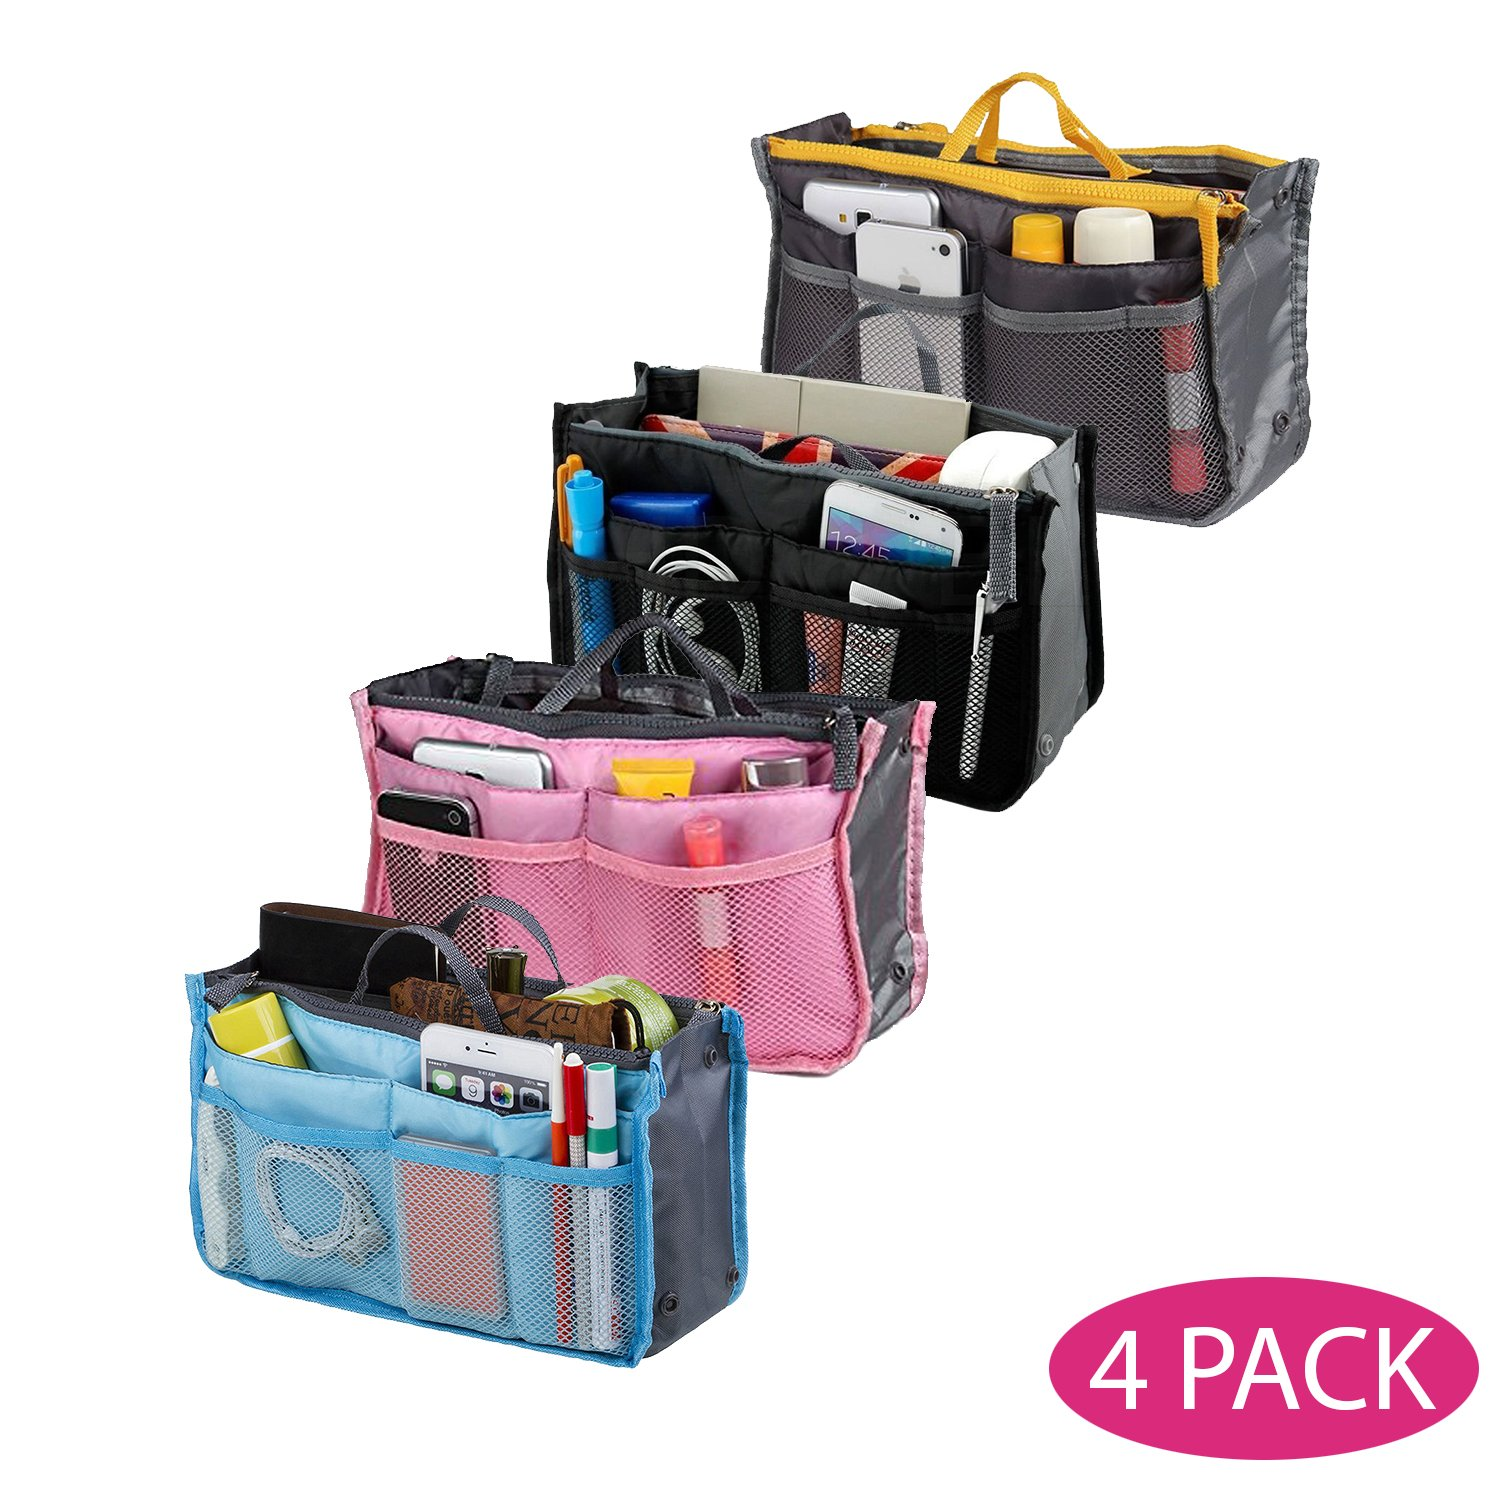 dc00d50cee85 Top Quality Organizer Travel Bag For Women| 12 Compartment Tote ...